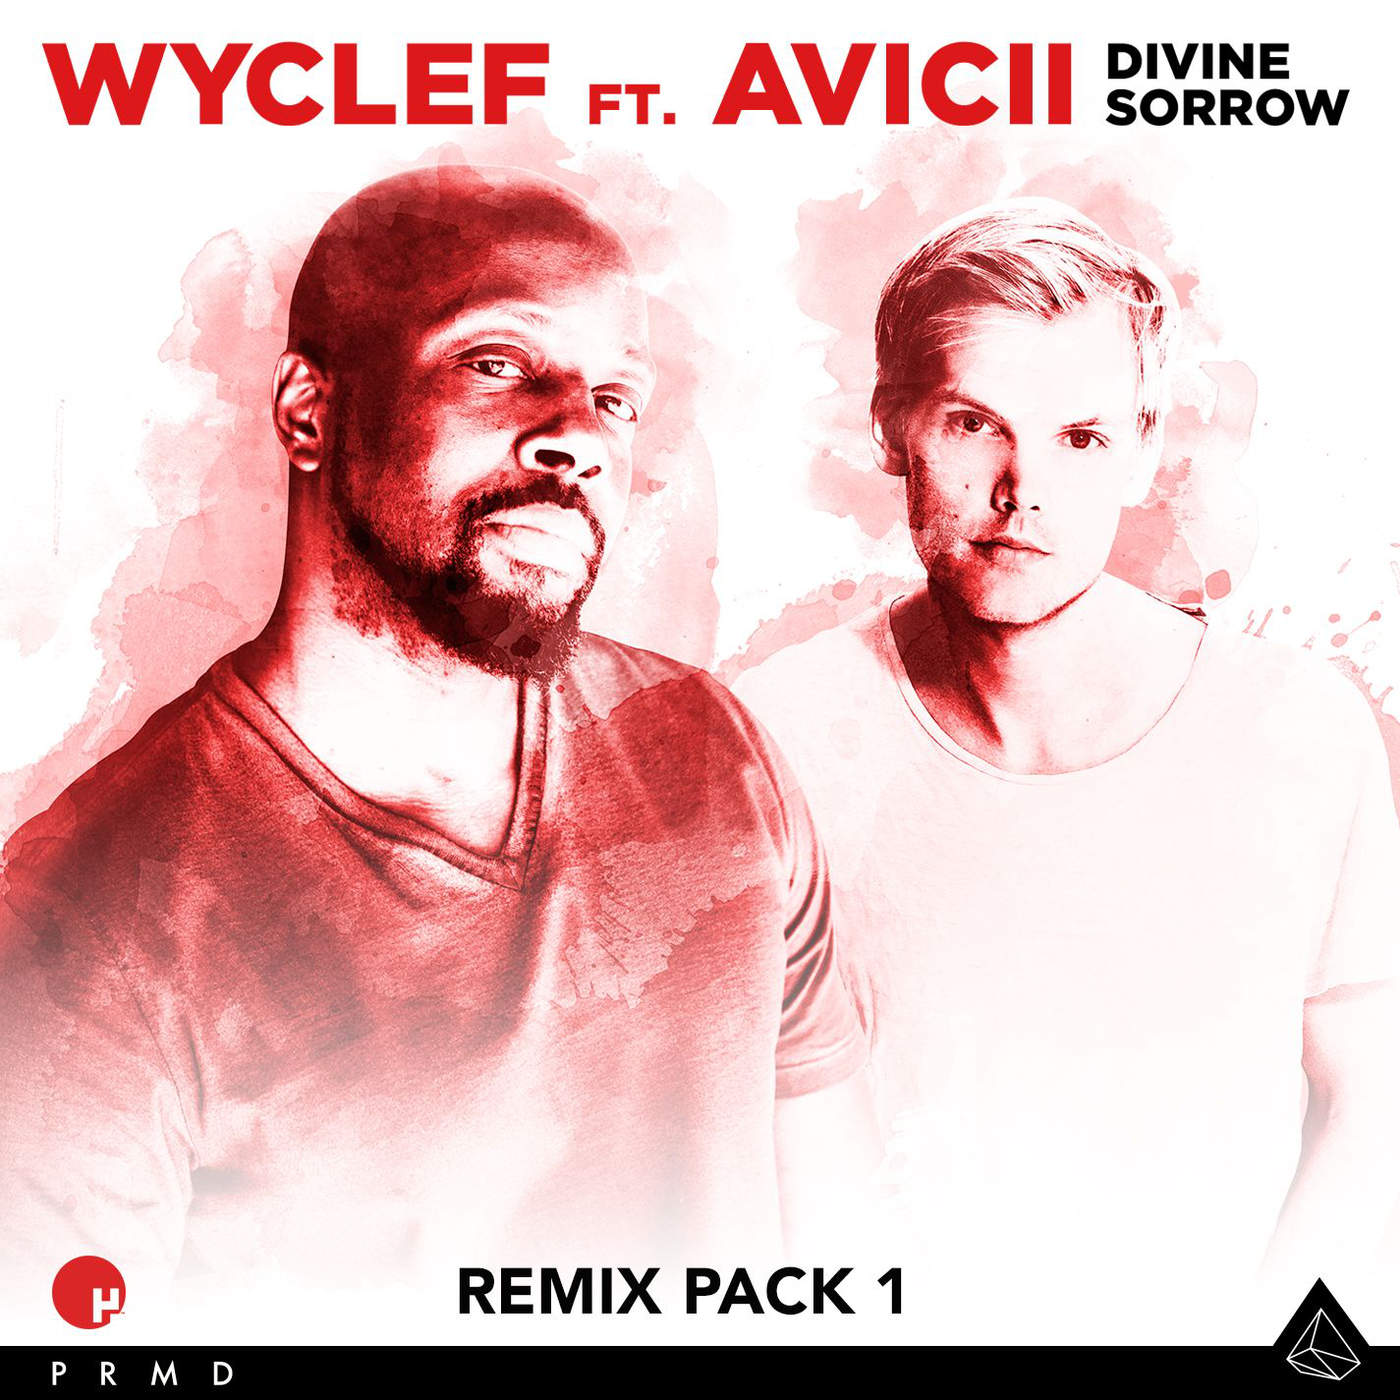 Wyclef Jean – Divine Sorrow Remix Pack 1 (feat. Avicii) – Single [iTunes Plus AAC M4A] (2014)